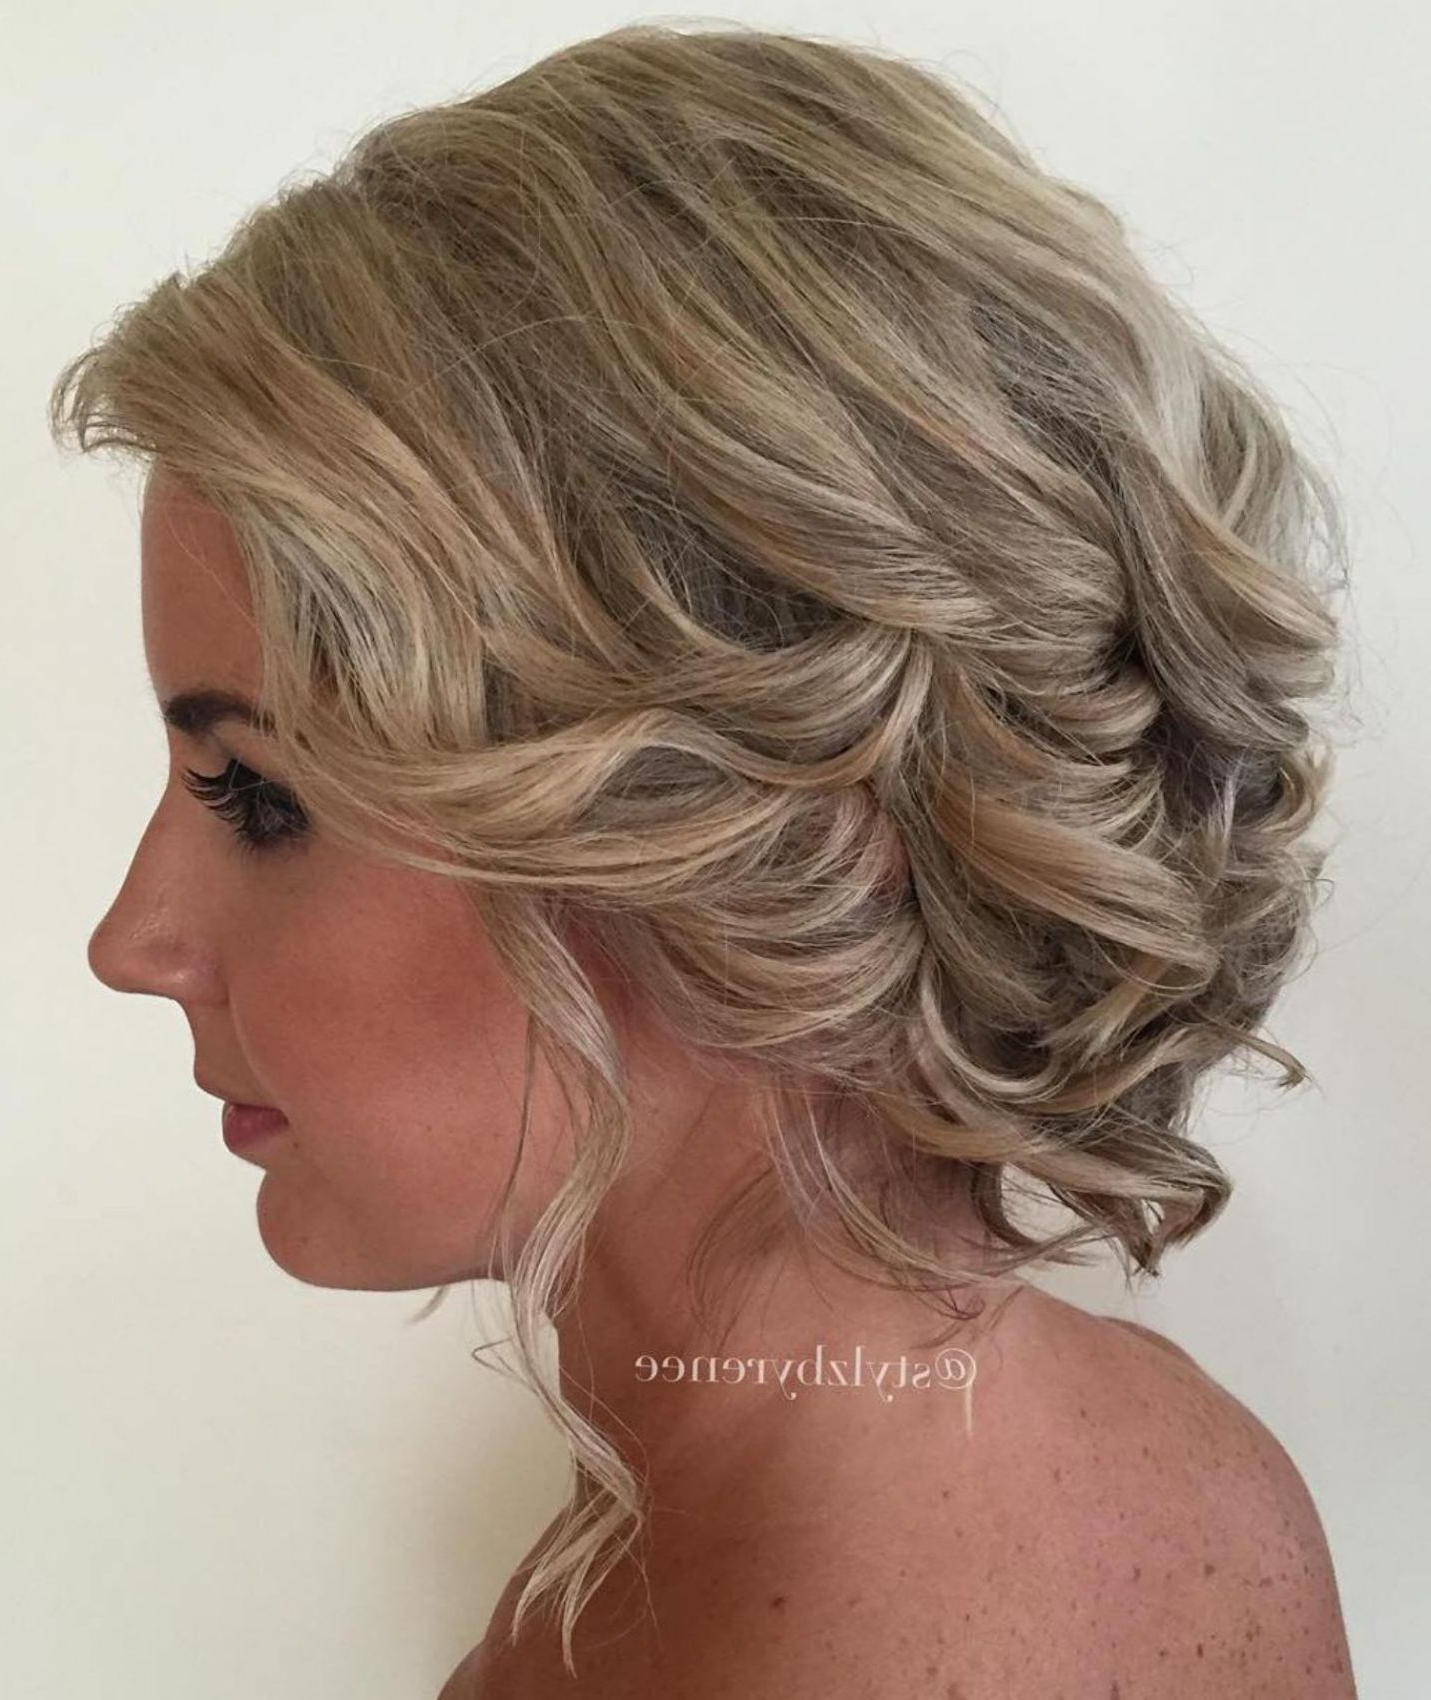 2017 Wavy And Wispy Blonde Updo Wedding Hairstyles Within 60 Updos For Short Hair – Your Creative Short Hair Inspiration (Gallery 4 of 20)